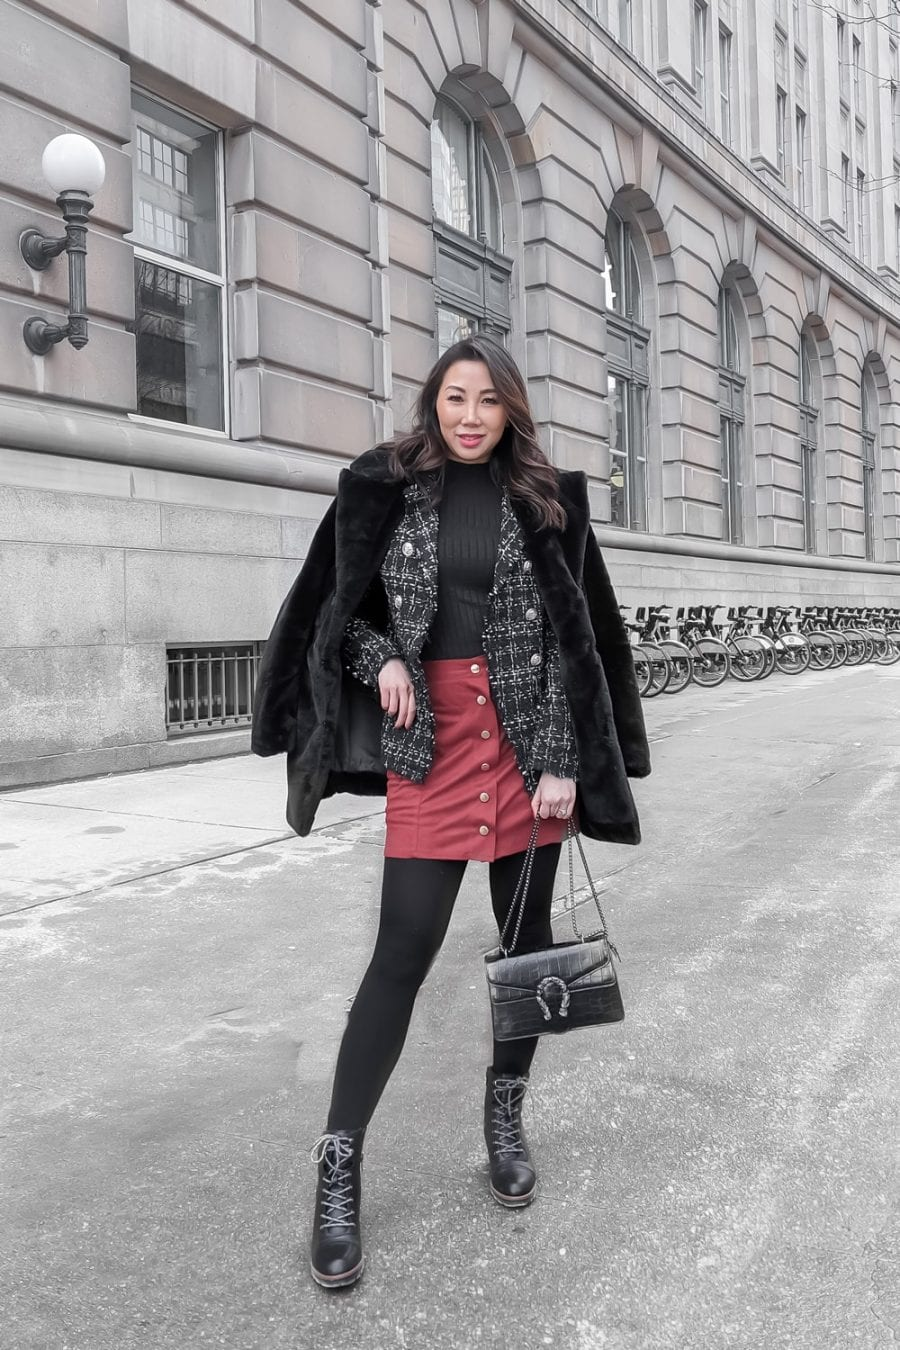 Winter Outfit Ideas - Layering your winter coats for a fun textured look.